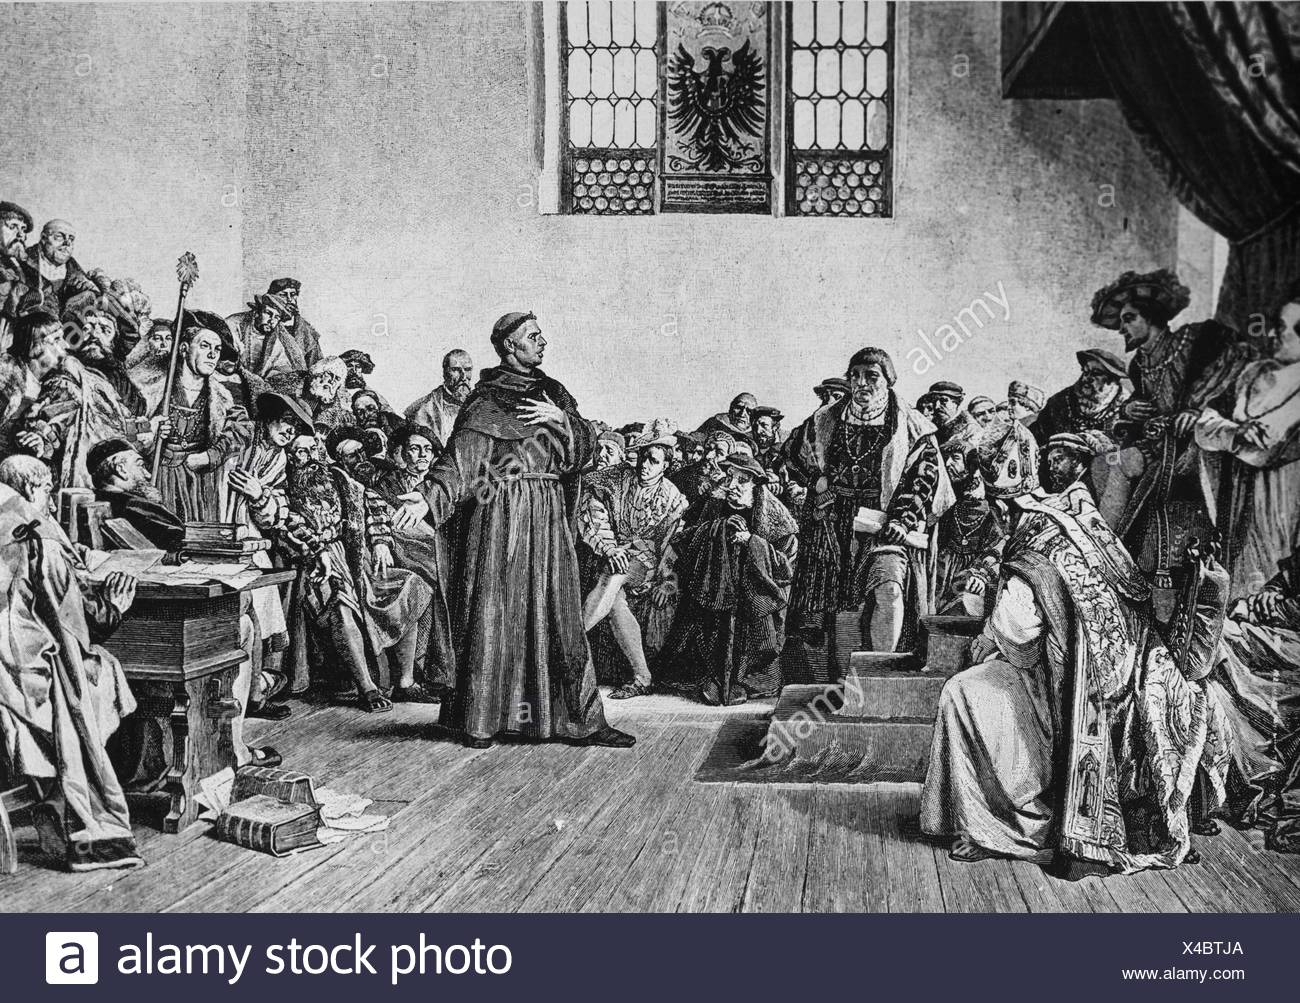 Martin Luther: The Great Reformer, print - Stock Image